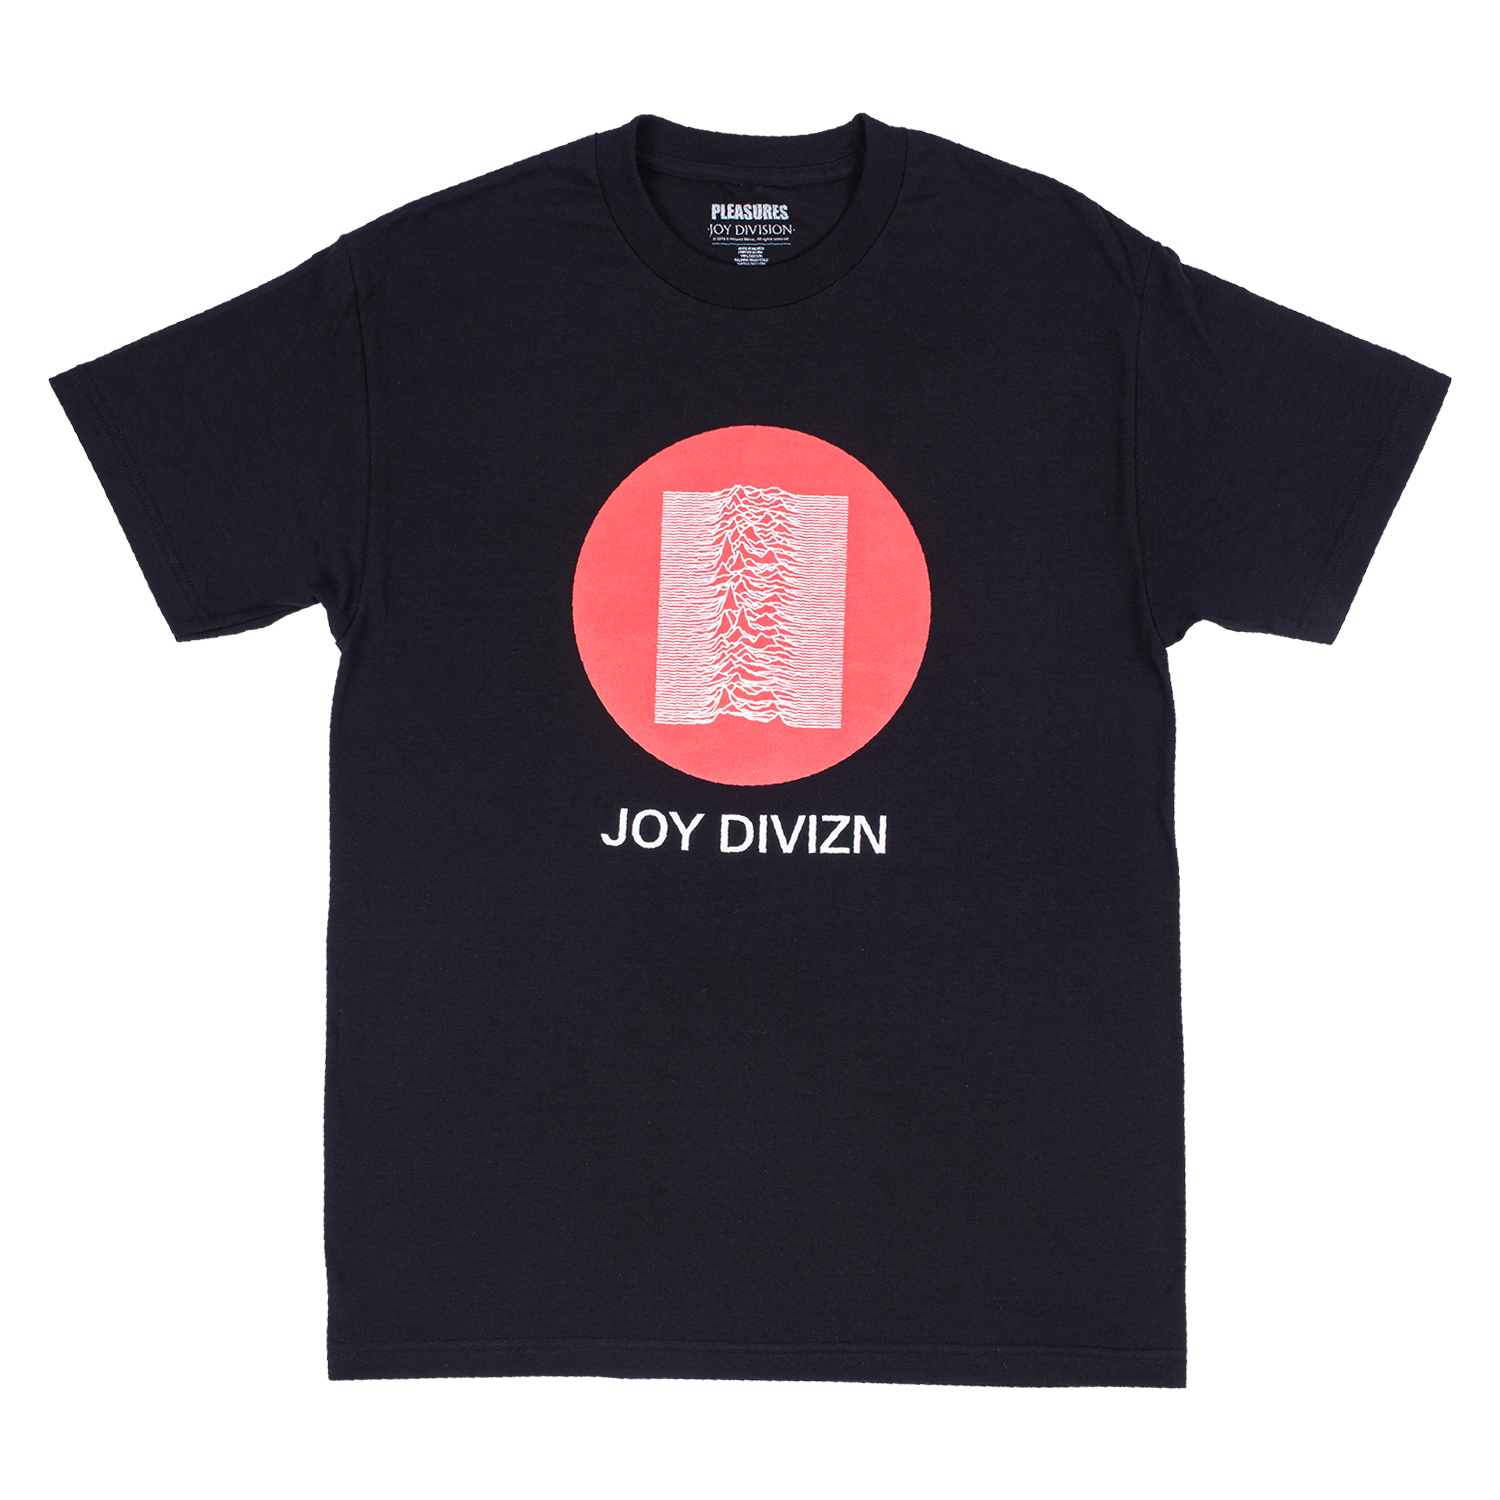 Pleasures x Joy Division Global Short Sleeve Shirt (Black)